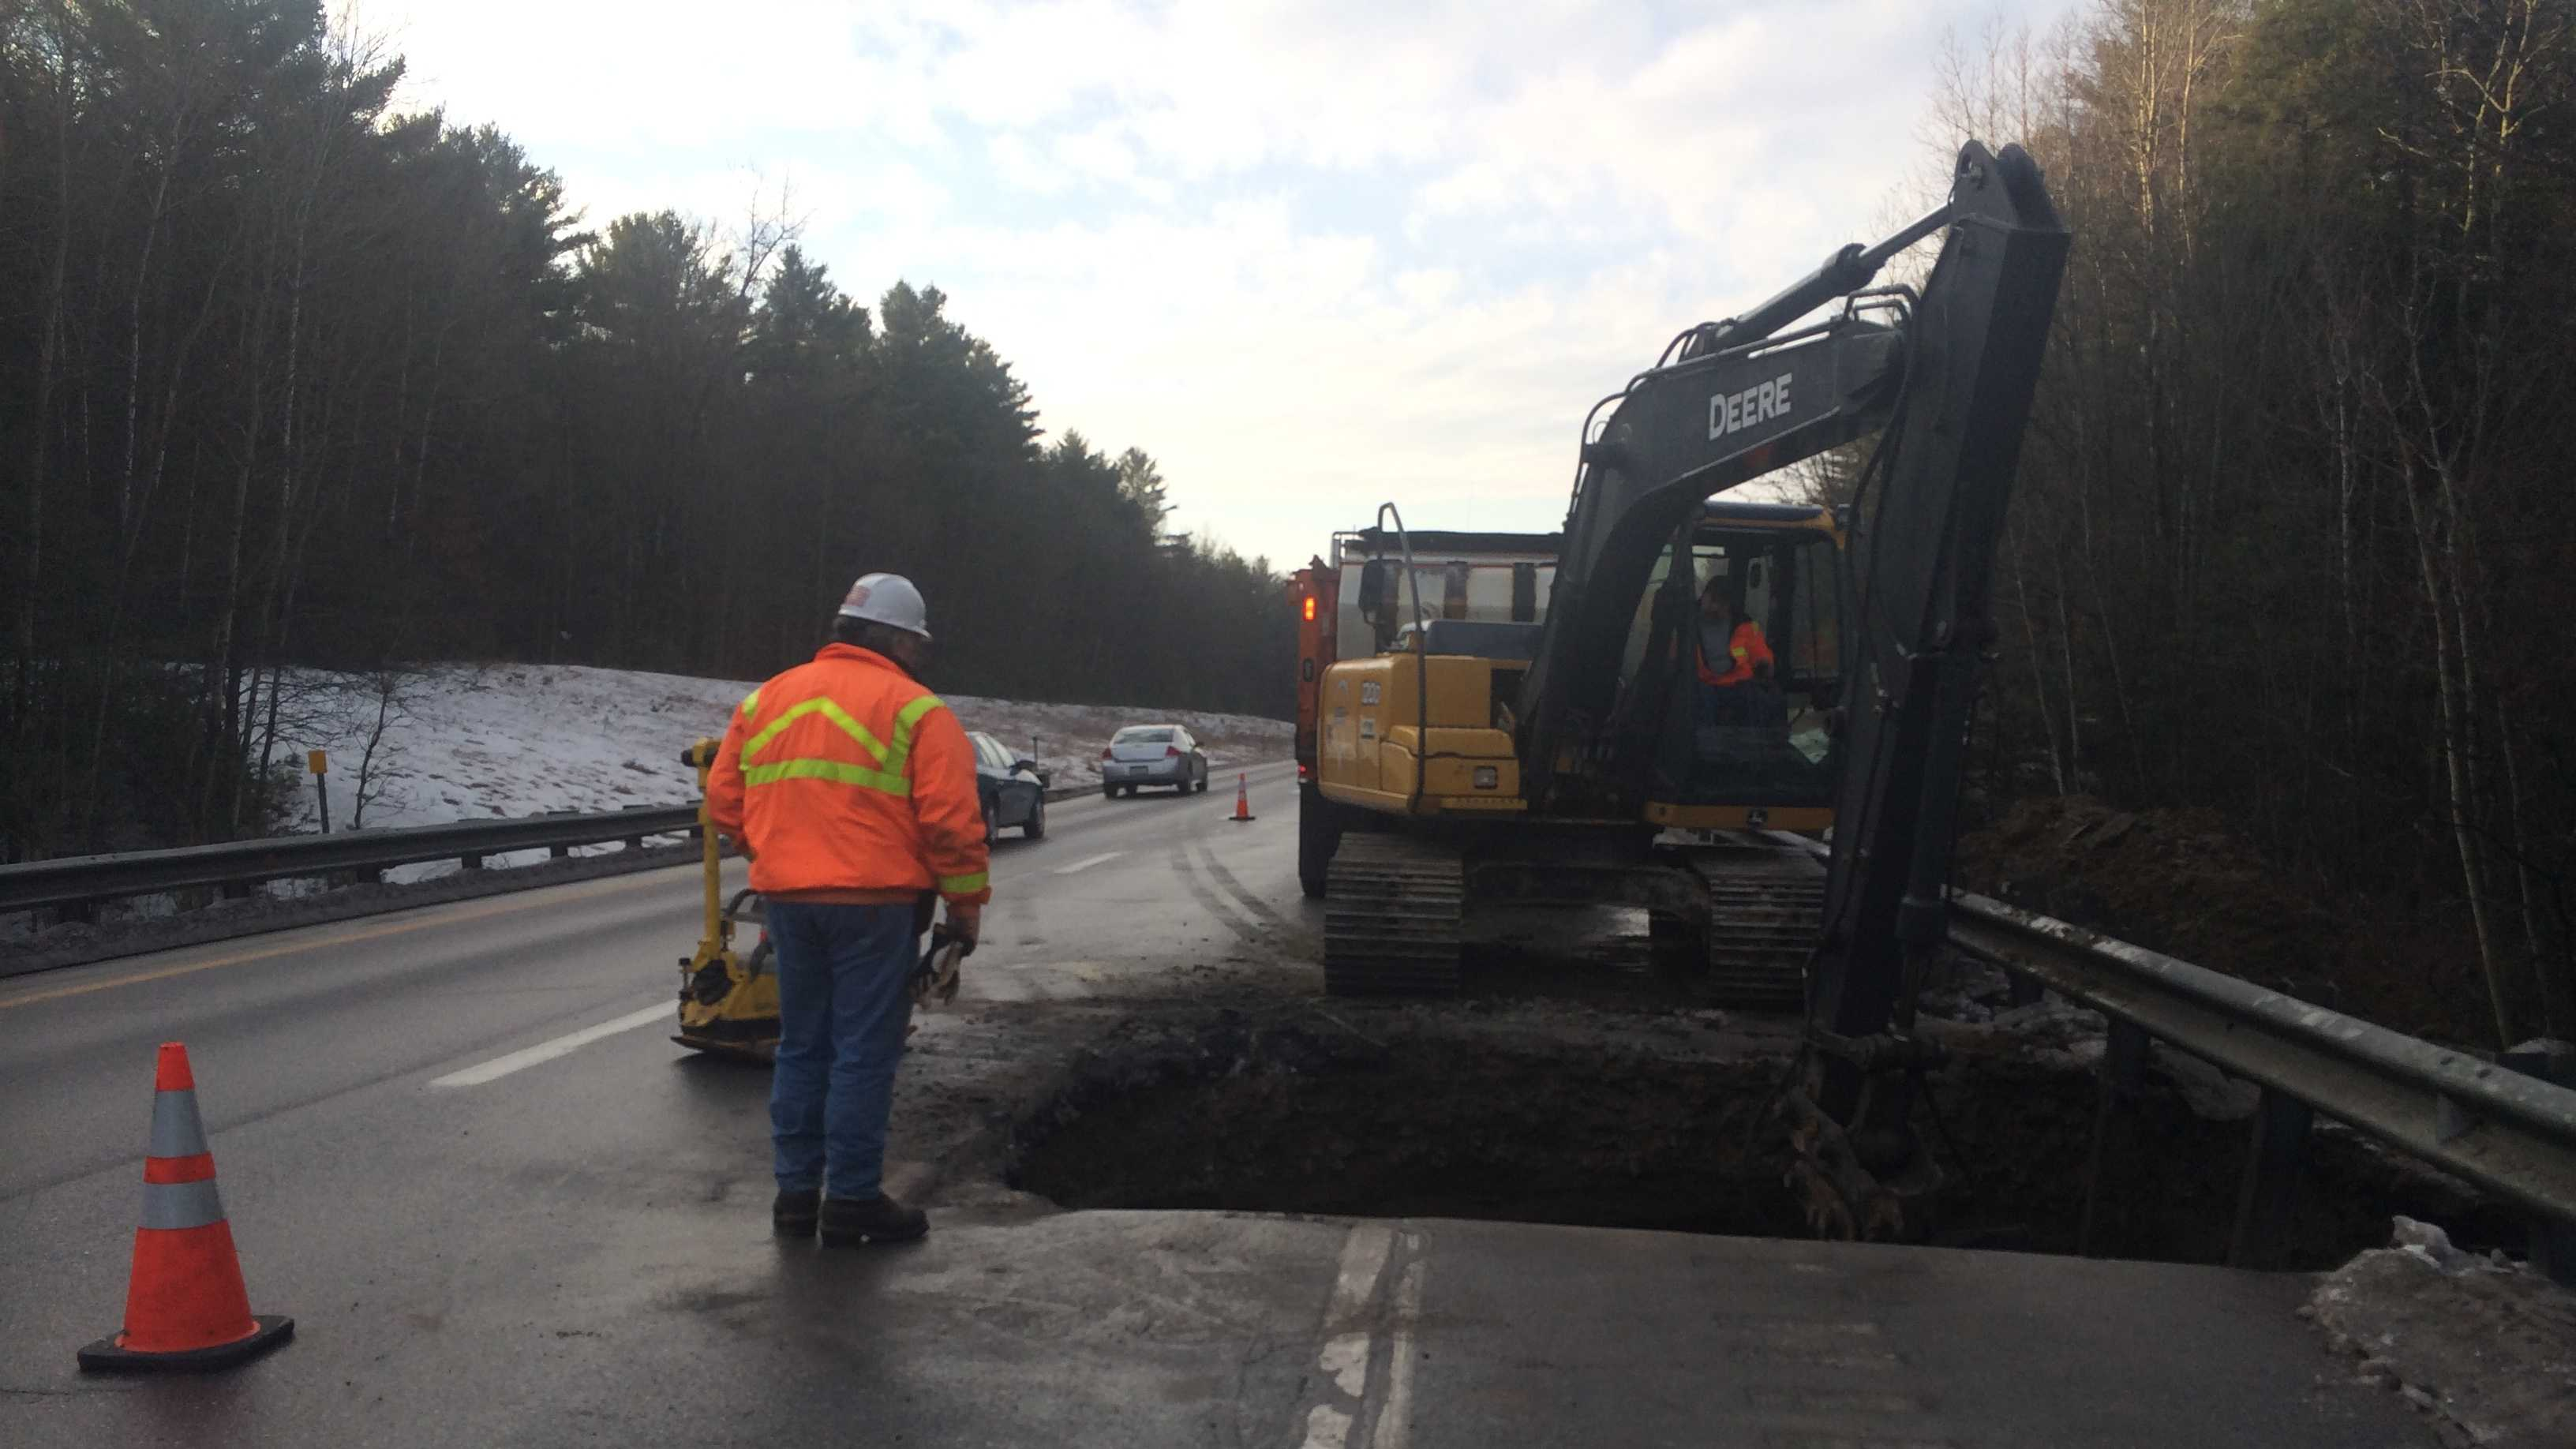 Sinkhole shuts down part of I-89